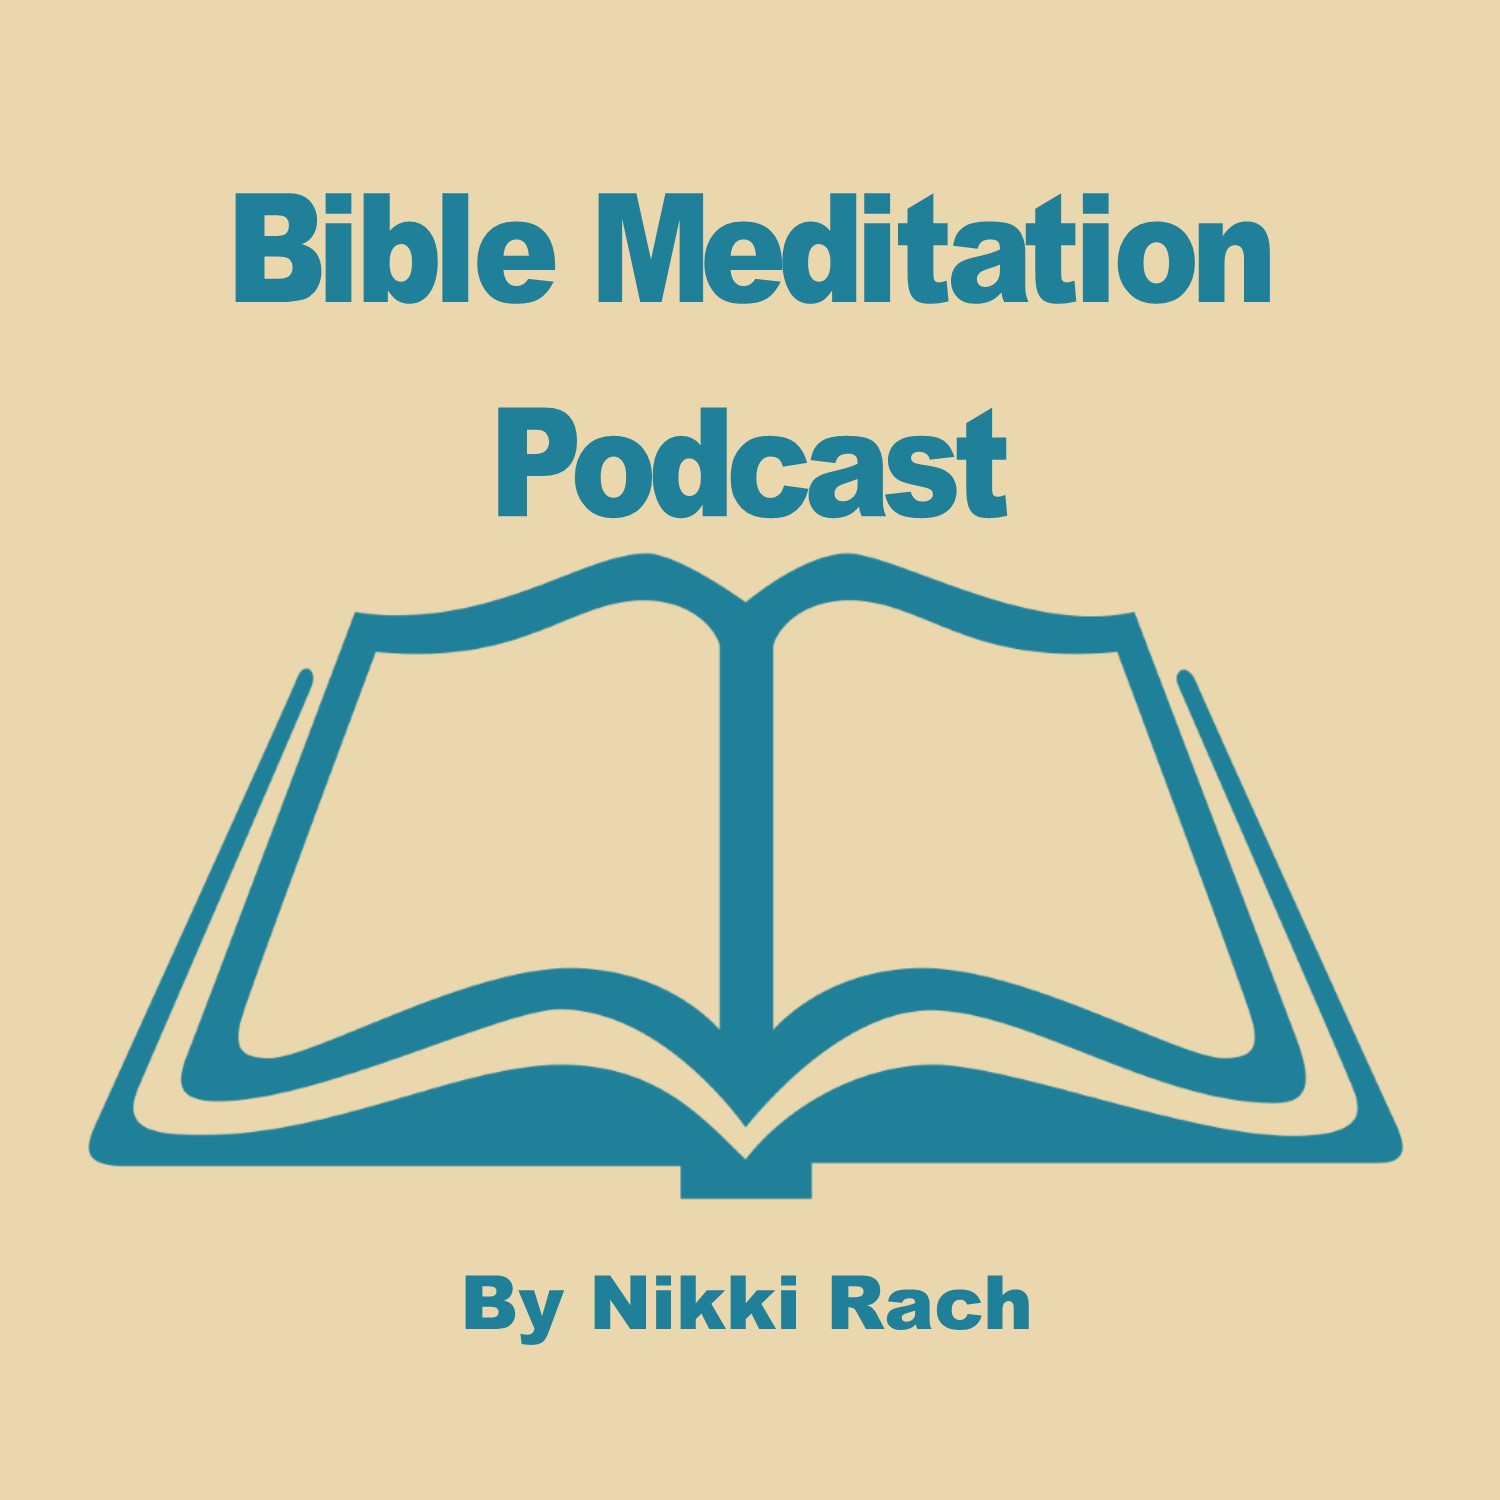 Bible Meditation Podcast